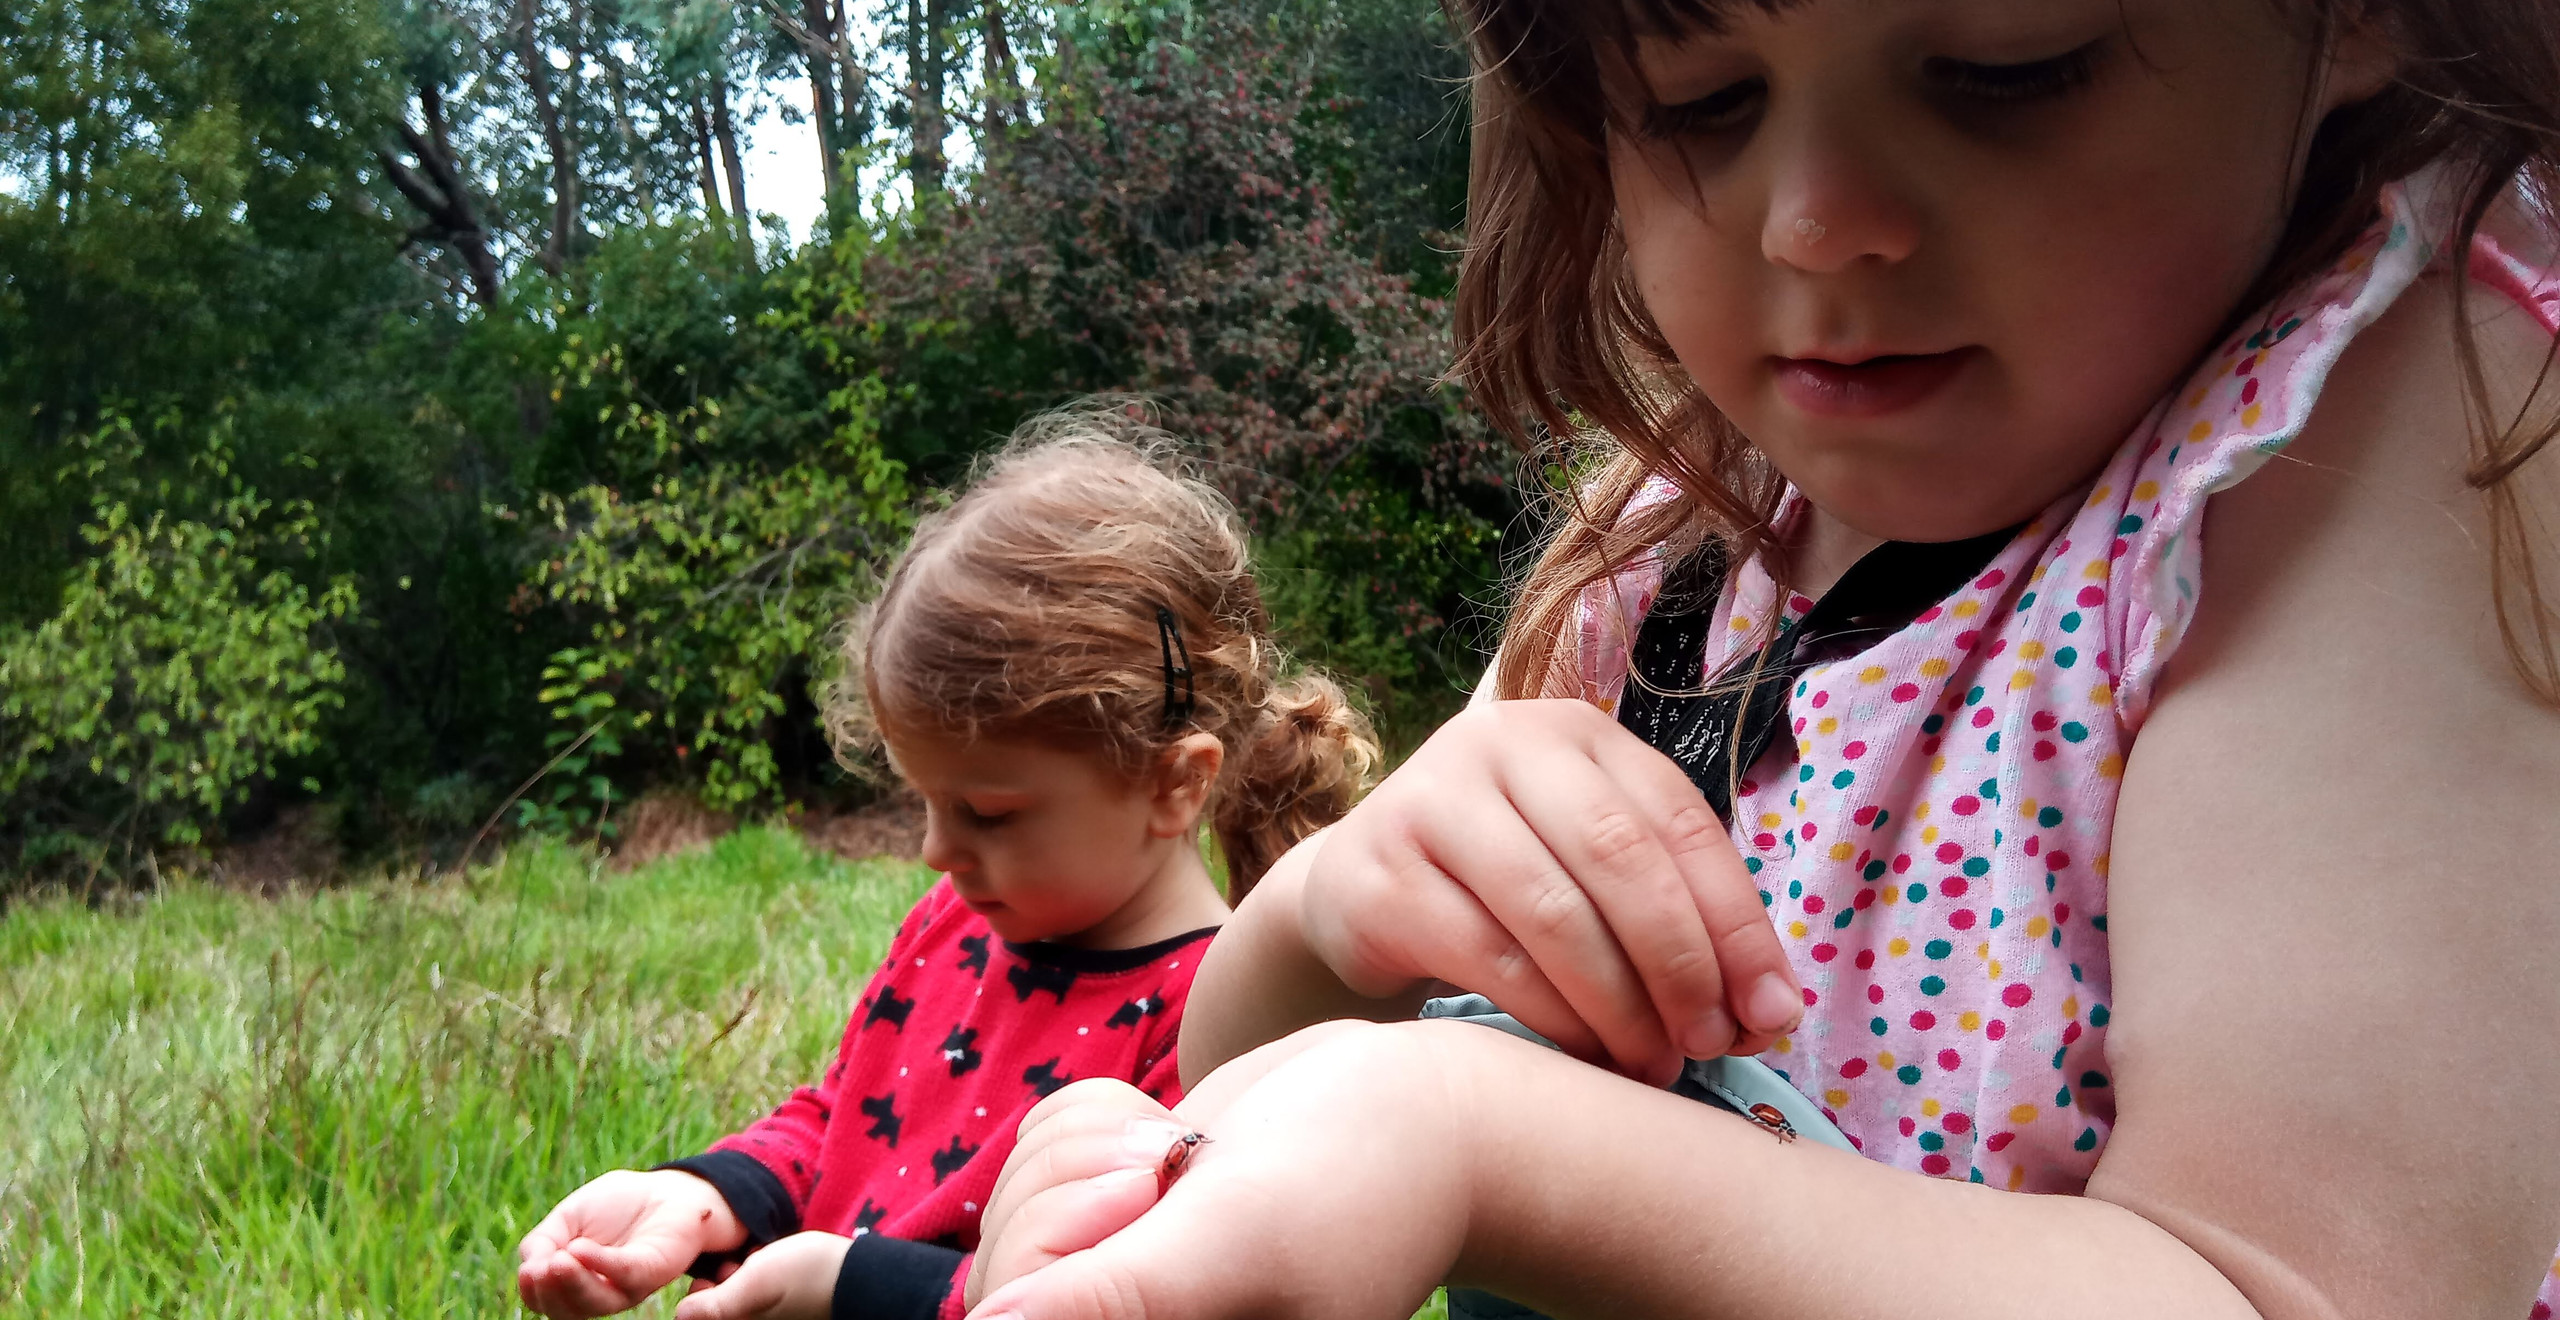 Mina and Luka hold their hands still and look at ladybugs that are crawling on them.